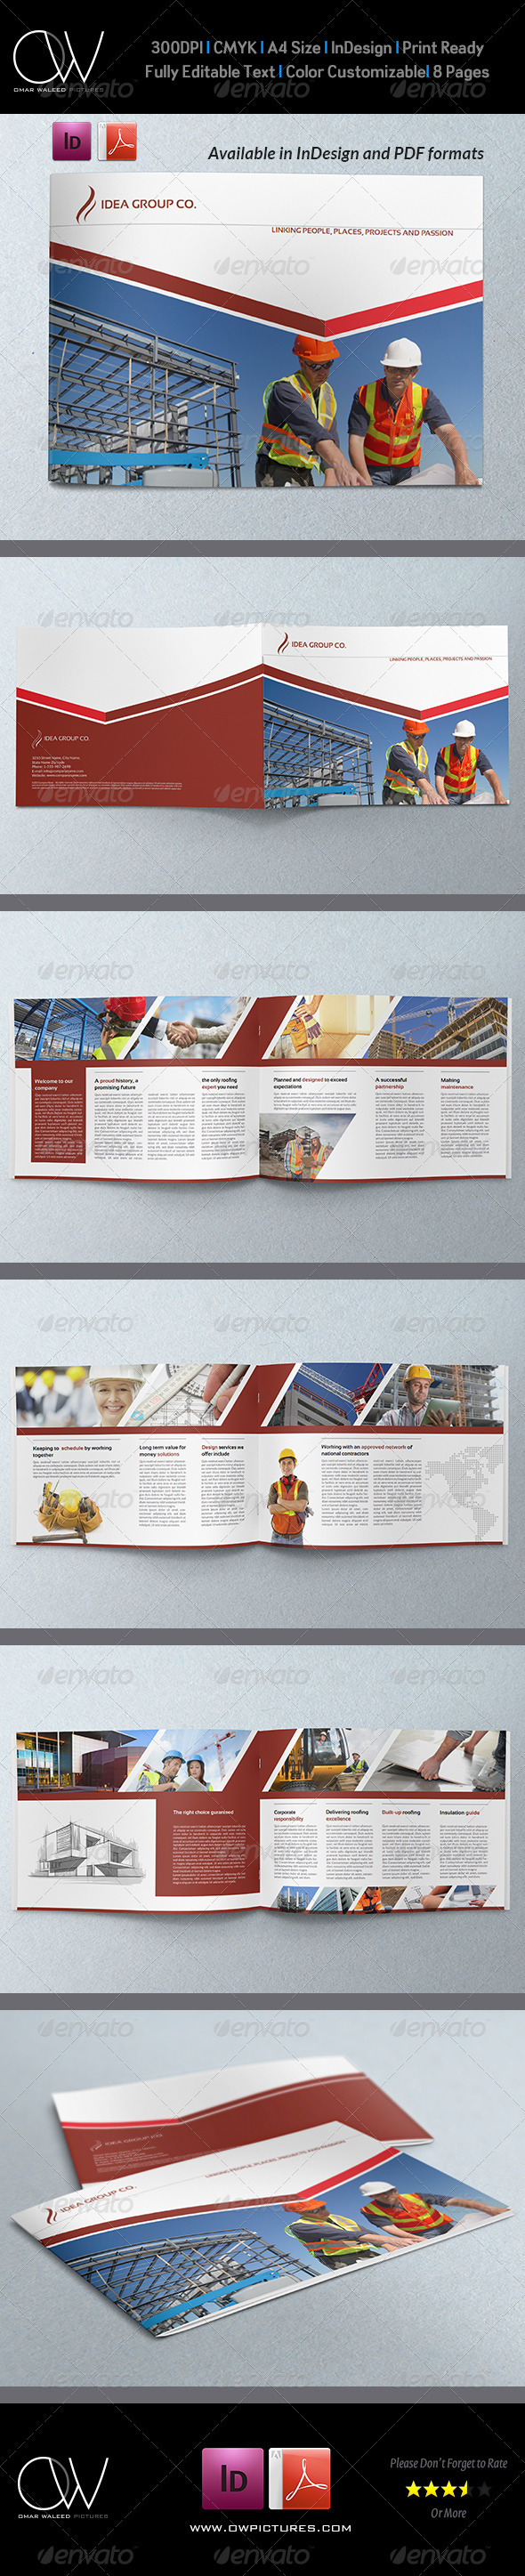 GraphicRiver Corporate Brochure Template Vol.24 8 Pages 6768024